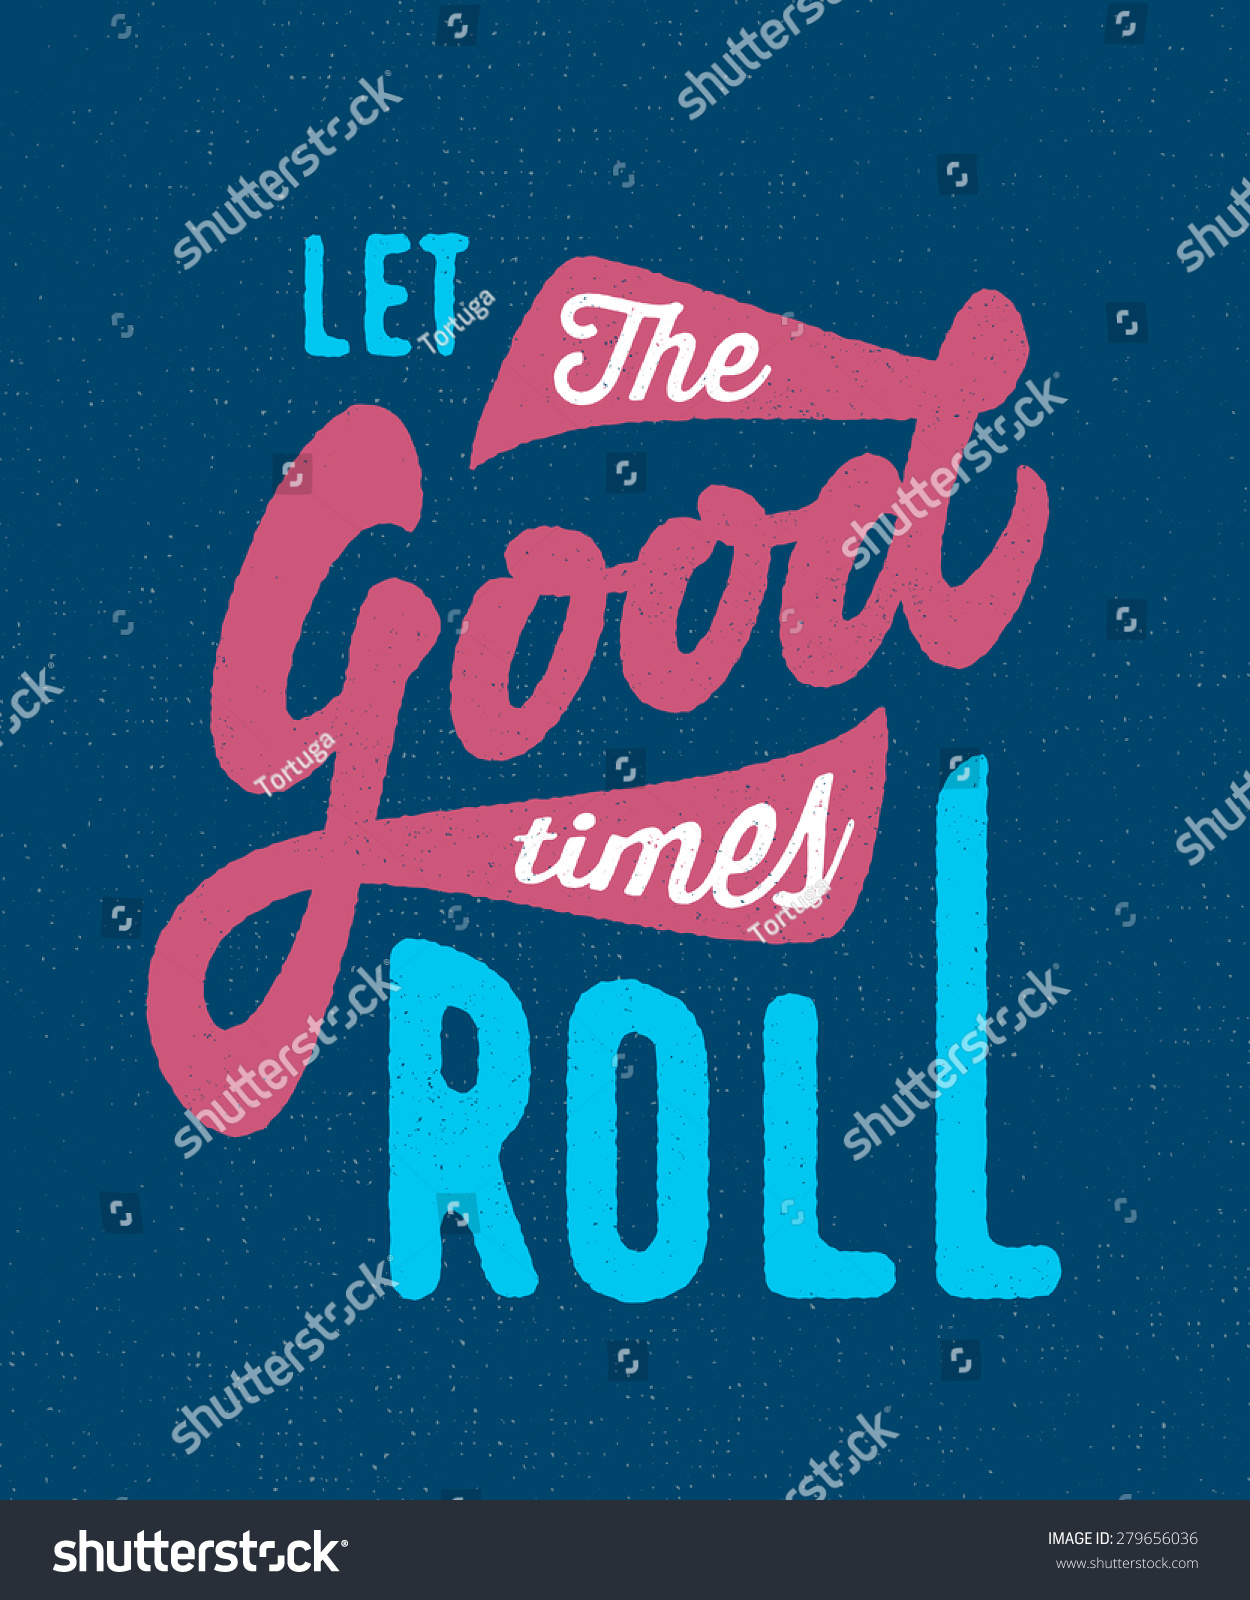 let the good times roll vintage retro old school funky t shirt apparel print poster graphics. Black Bedroom Furniture Sets. Home Design Ideas